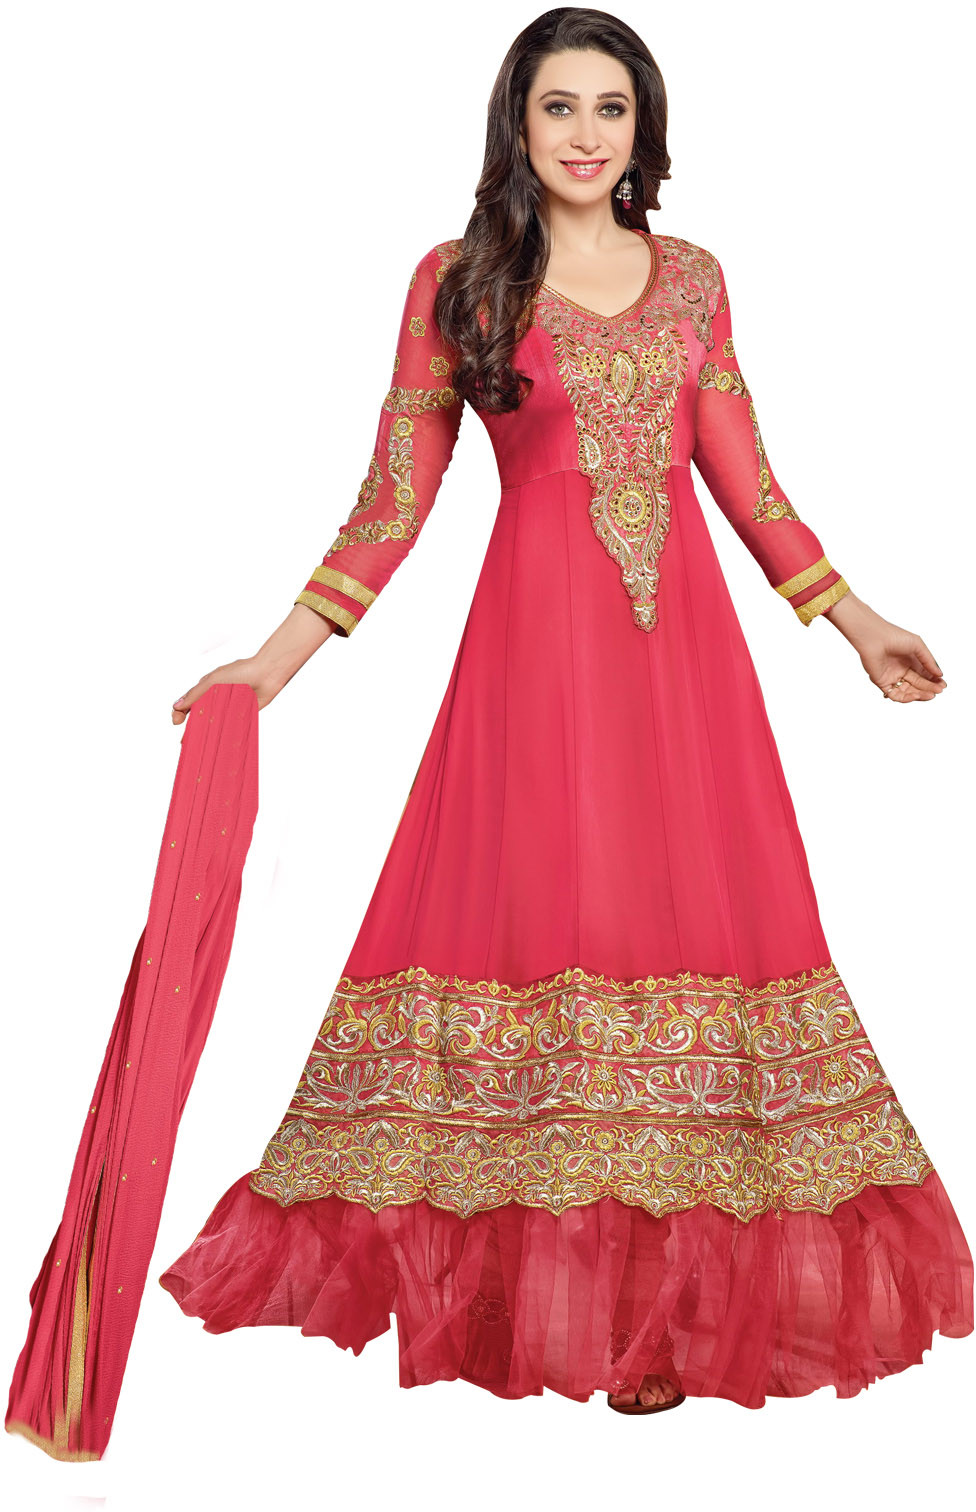 Awesome This Follows The Companys Recent Launch Of A Womens Ethnic Wear Label Divastri, Which Includes More Than 1,500 Styles Of Sarees, Lehenga Cholis, And Dress Material Divastri Is Part Of Flipkart Smartbuy, An Umbrella Brand Launched